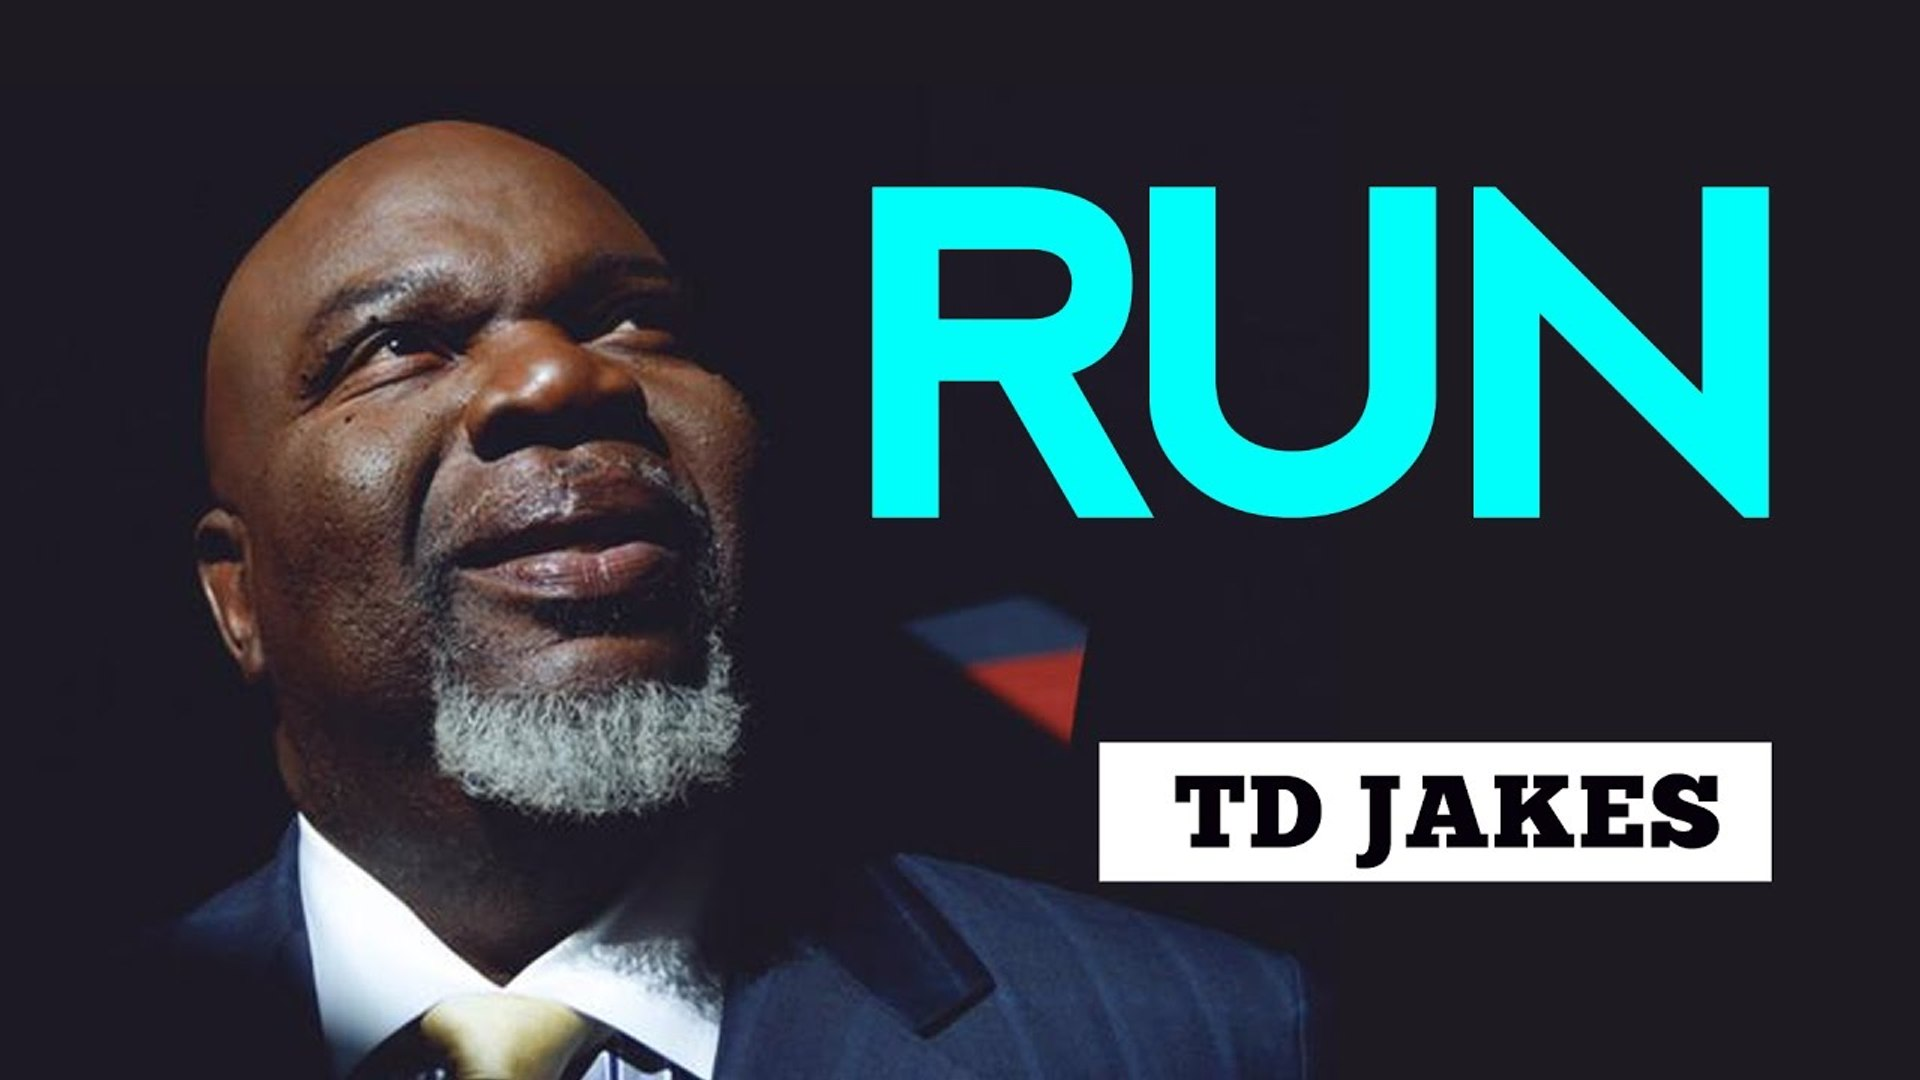 RUN AFTER YOUR DESTINY BY BISHOP TD JAKES 2018